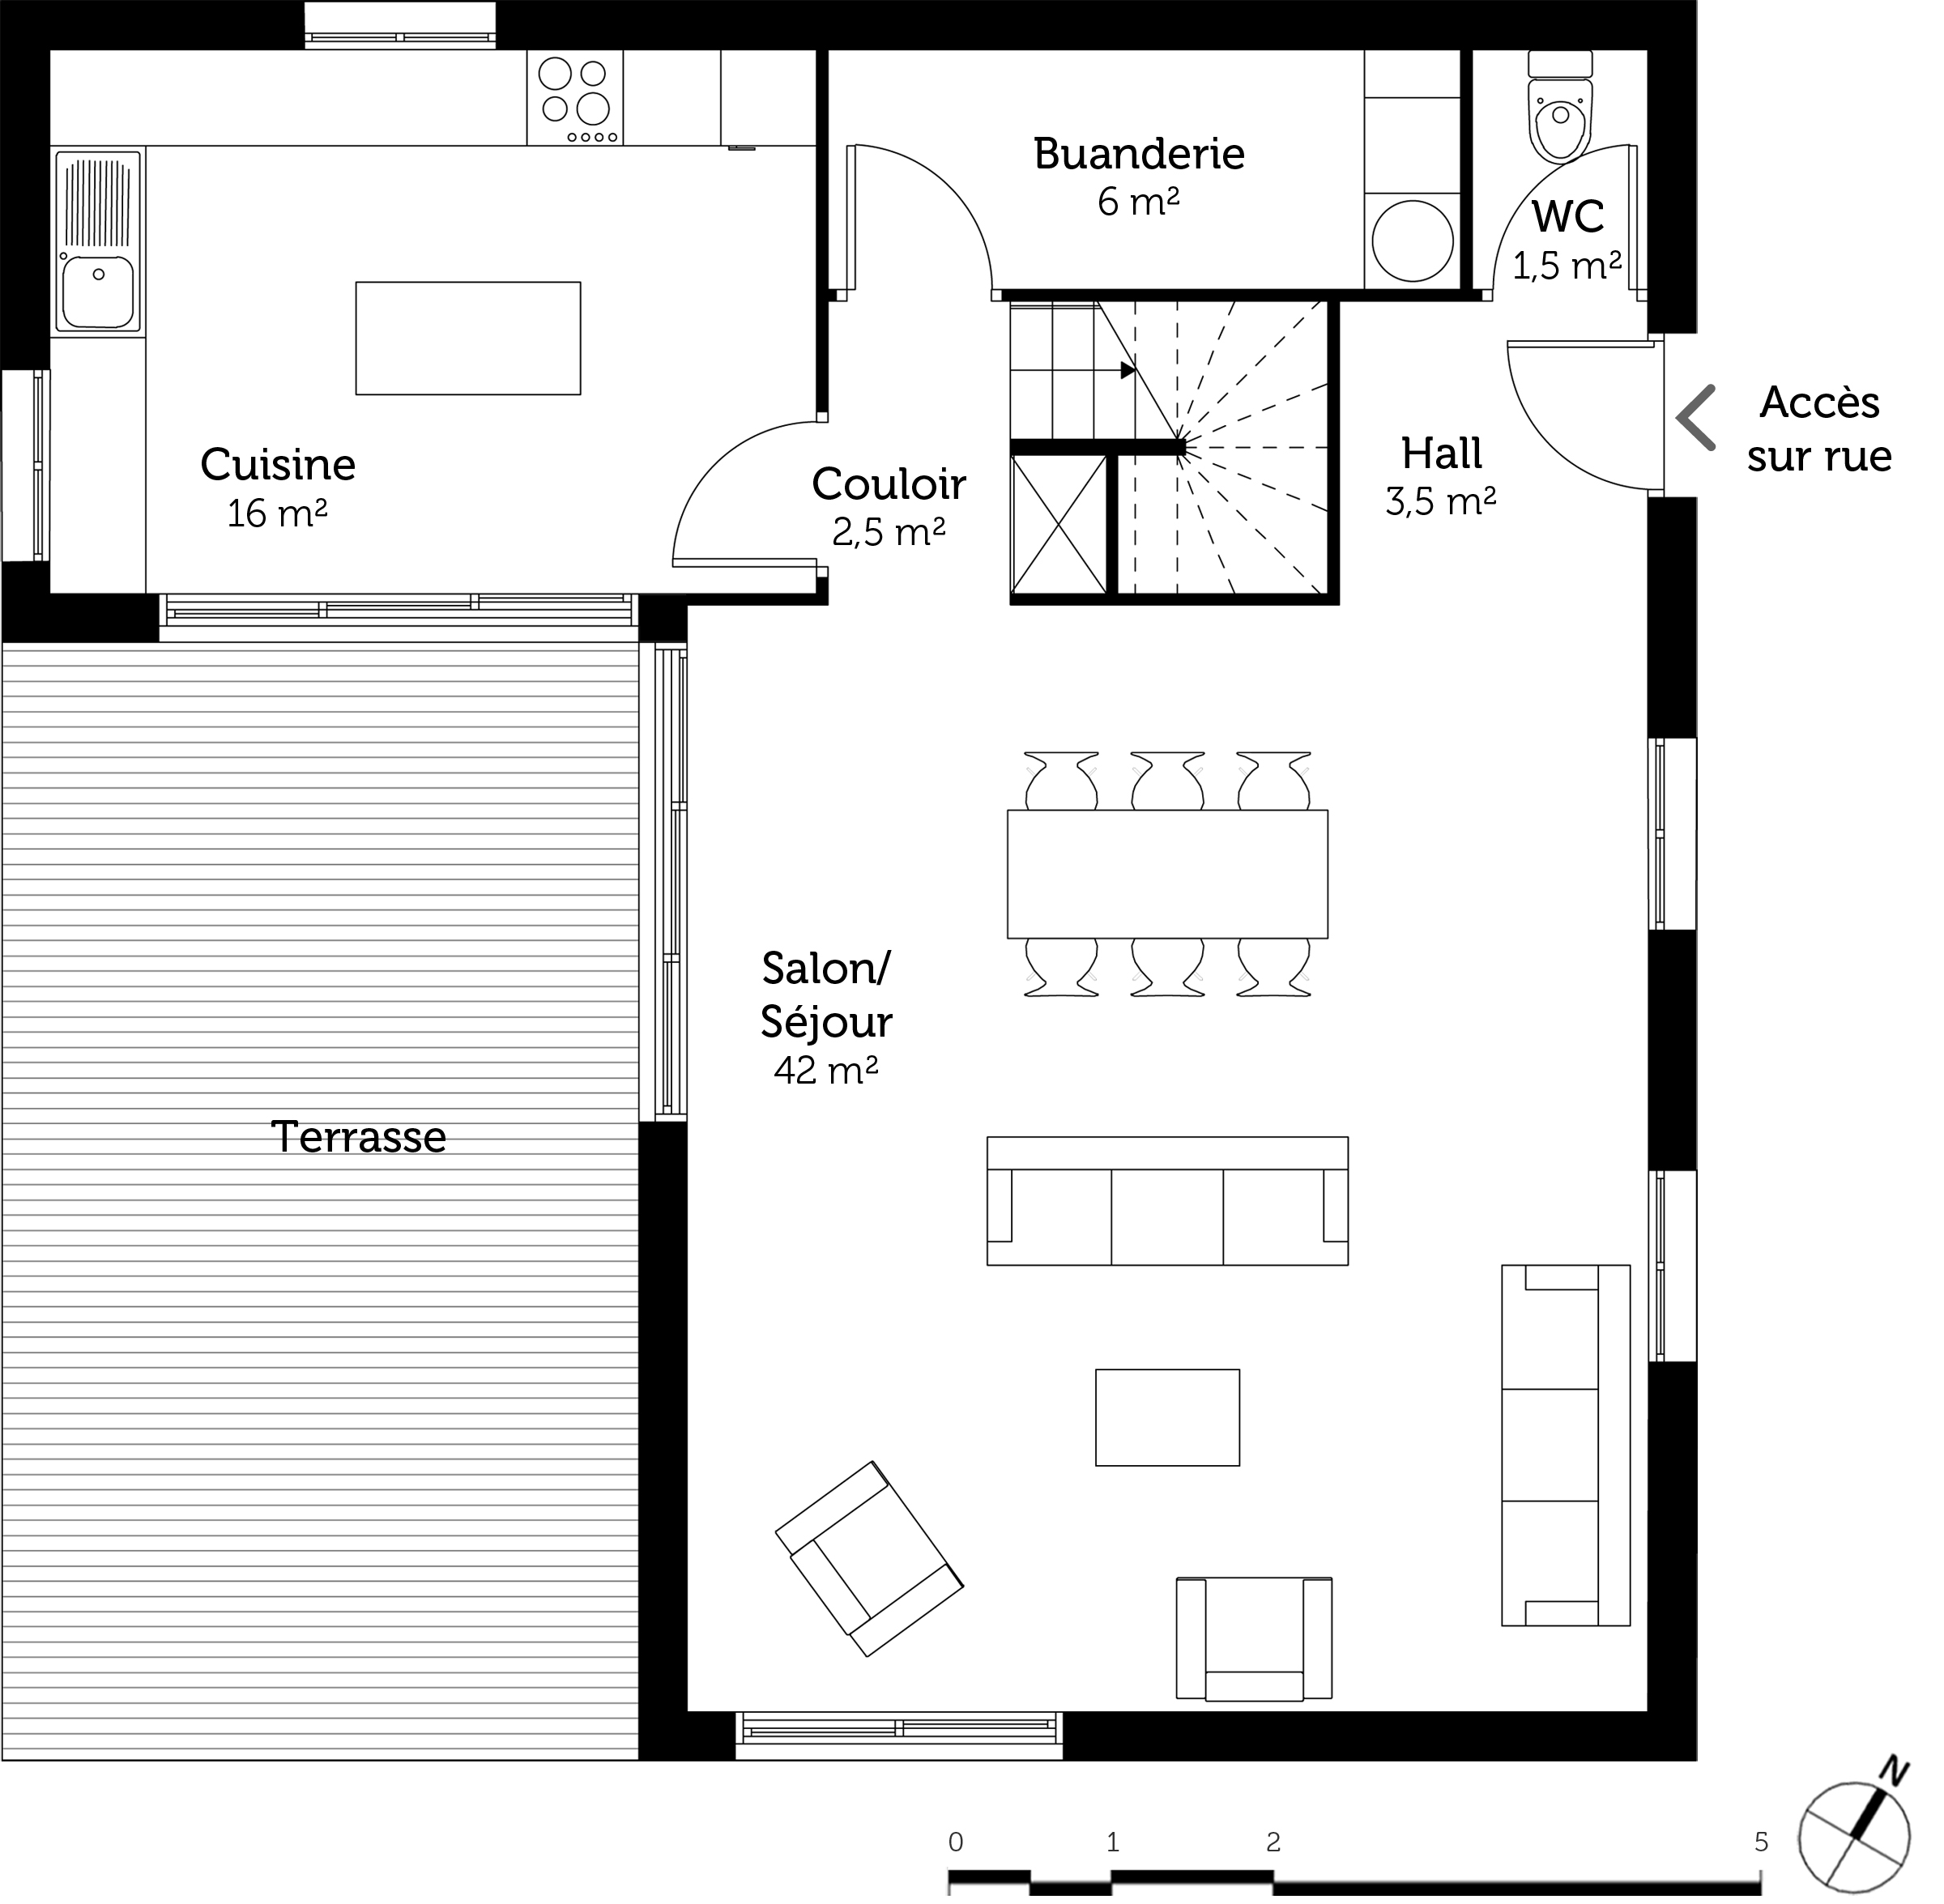 Plan maison 3 chambres et dressing ooreka for Plan amenagement salon